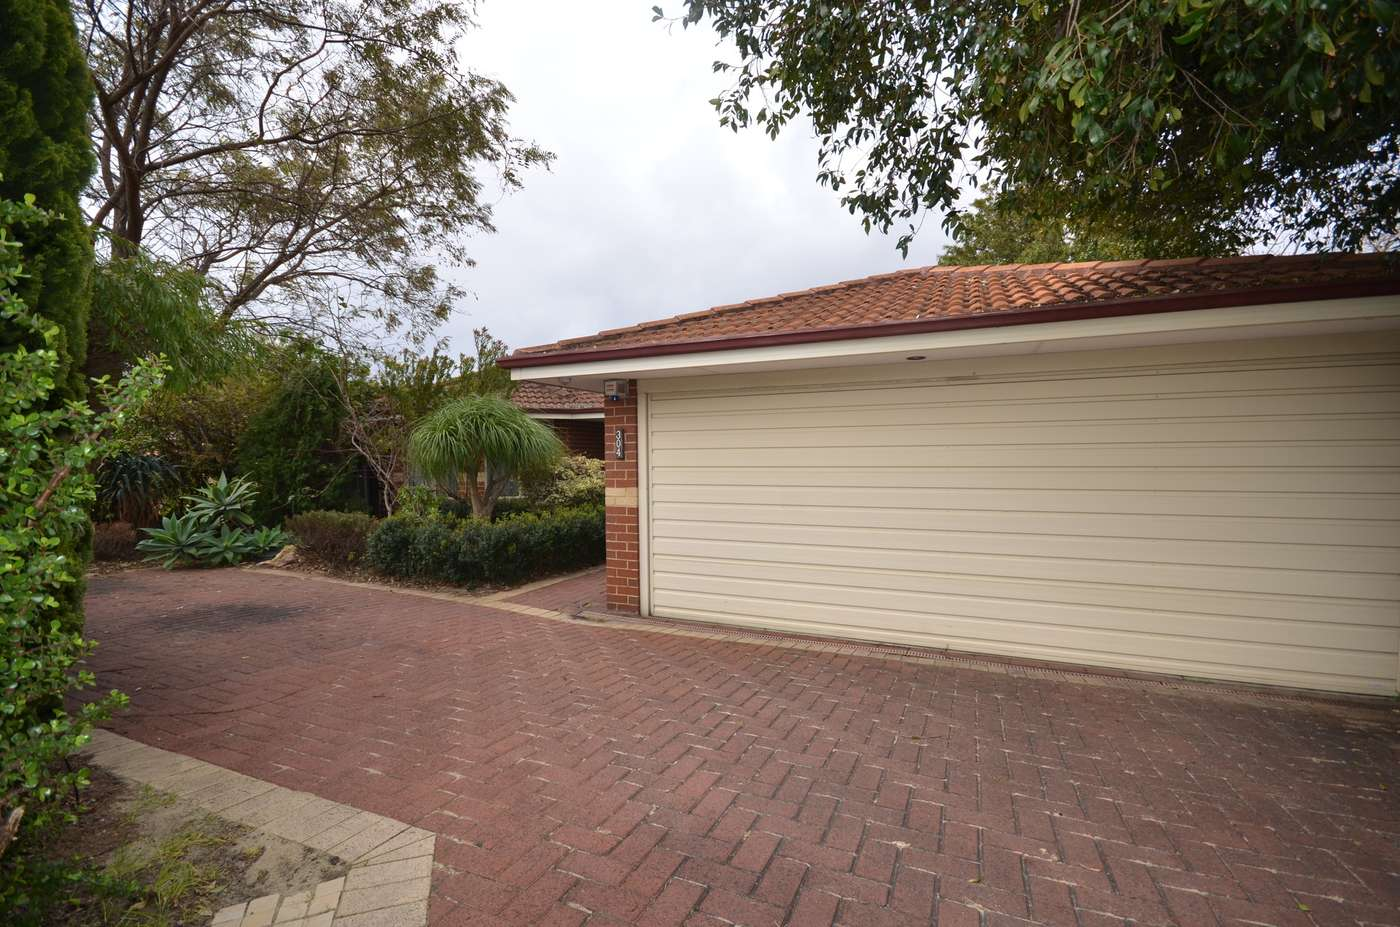 Main view of Homely house listing, 304 Stock Road, Willagee, WA 6156